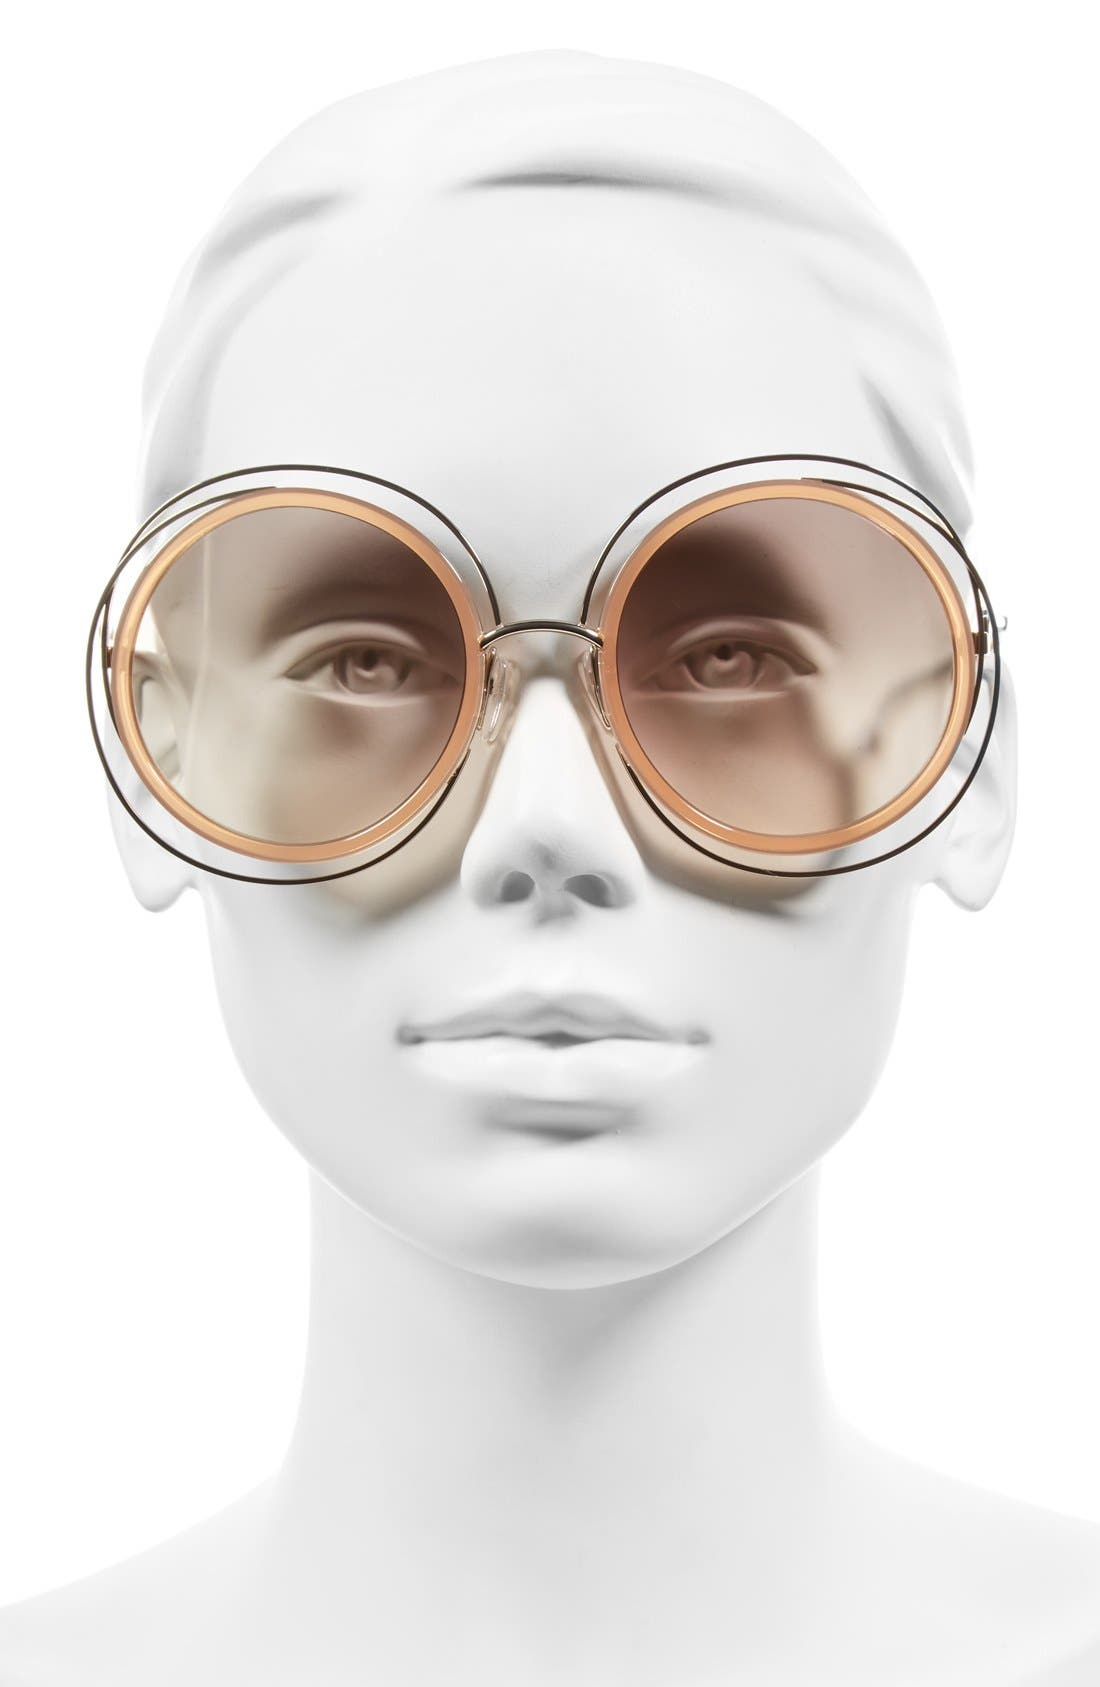 'Carlina' 58mm Round Sunglasses,                             Alternate thumbnail 2, color,                             GOLD/ TRANSPARENT PEACH